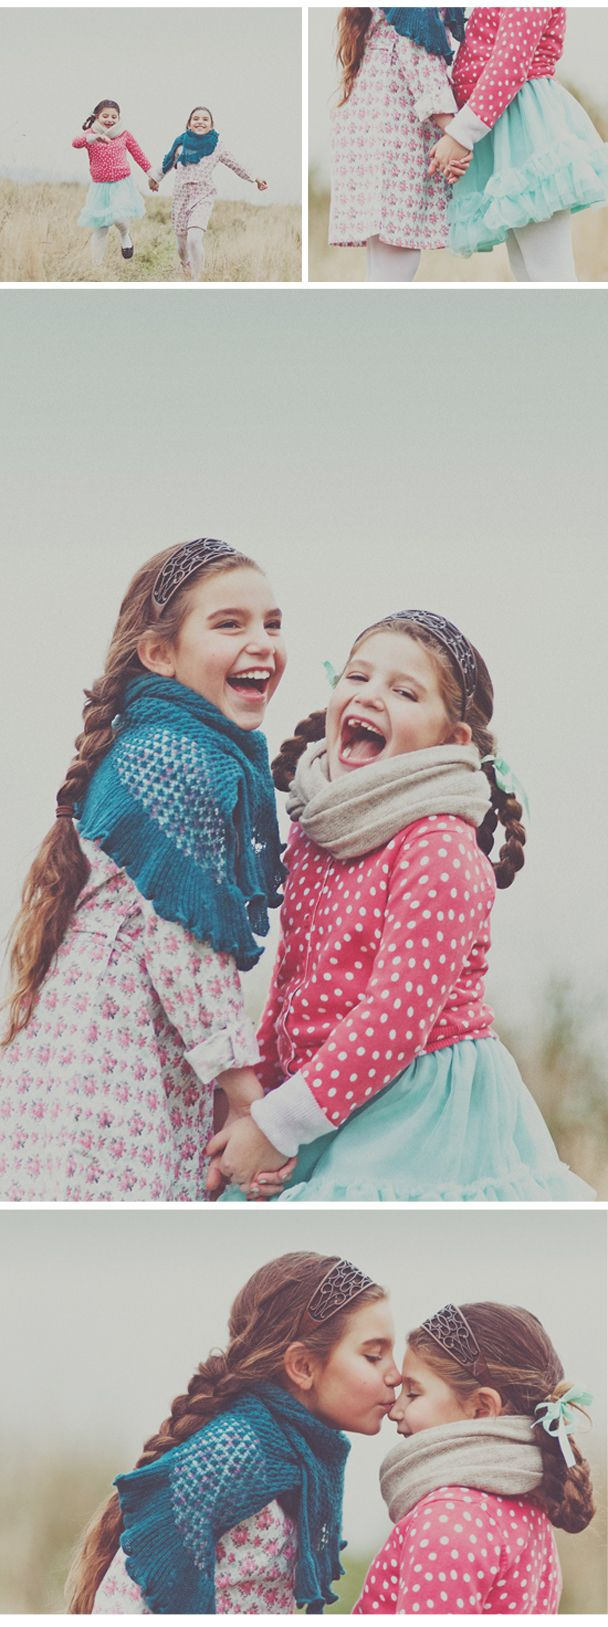 My 2 little sisters- Millie and Anna. Anna's 7 & Millie's 9. Both of them giggle all the time! And there giggles are infectious! Millie wants to be a weather reporter and Anna wants to be a actress.